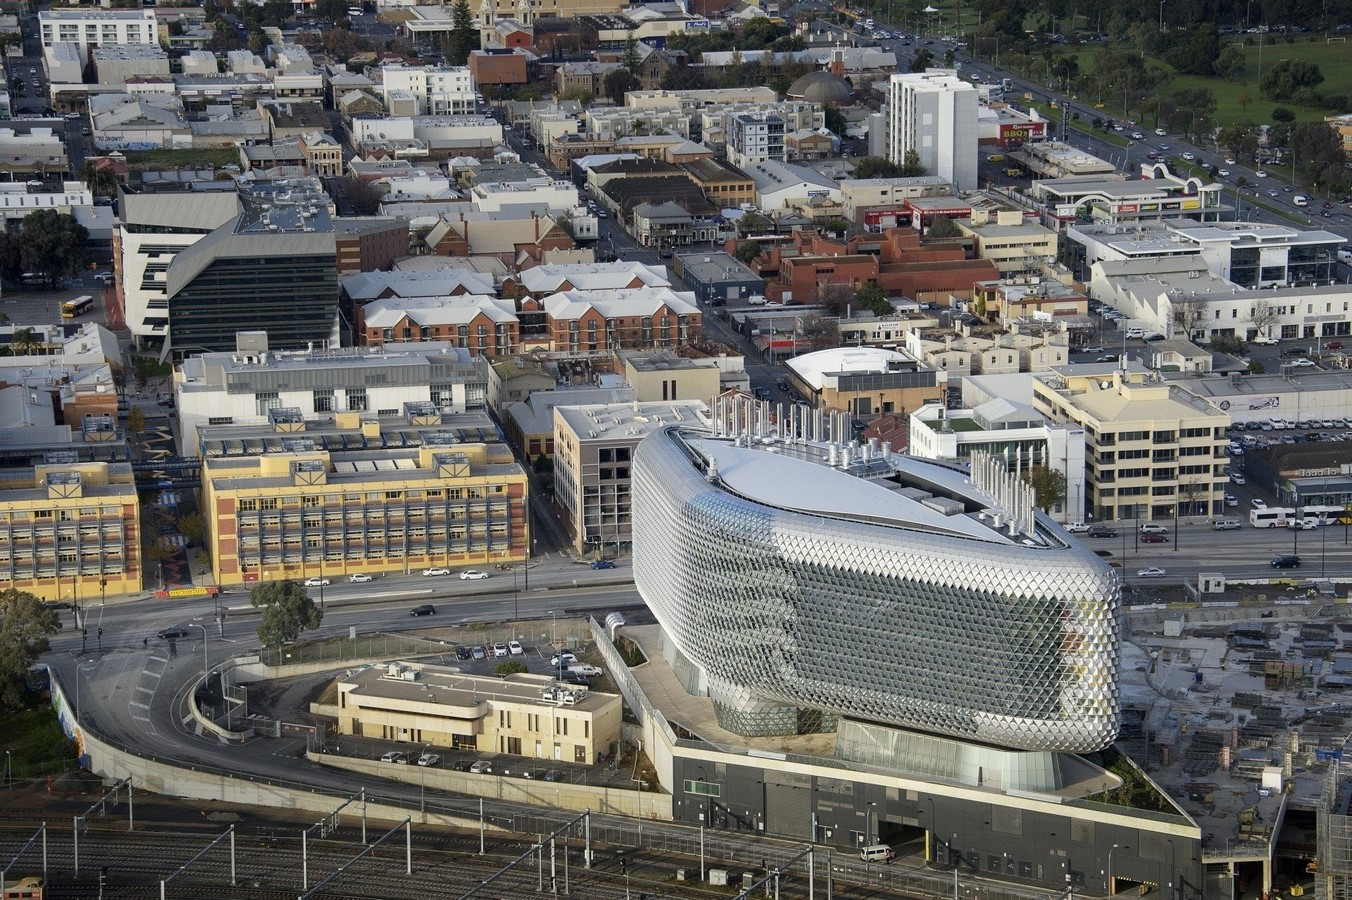 South Australian Health and Medical Research Institute - Sheet1